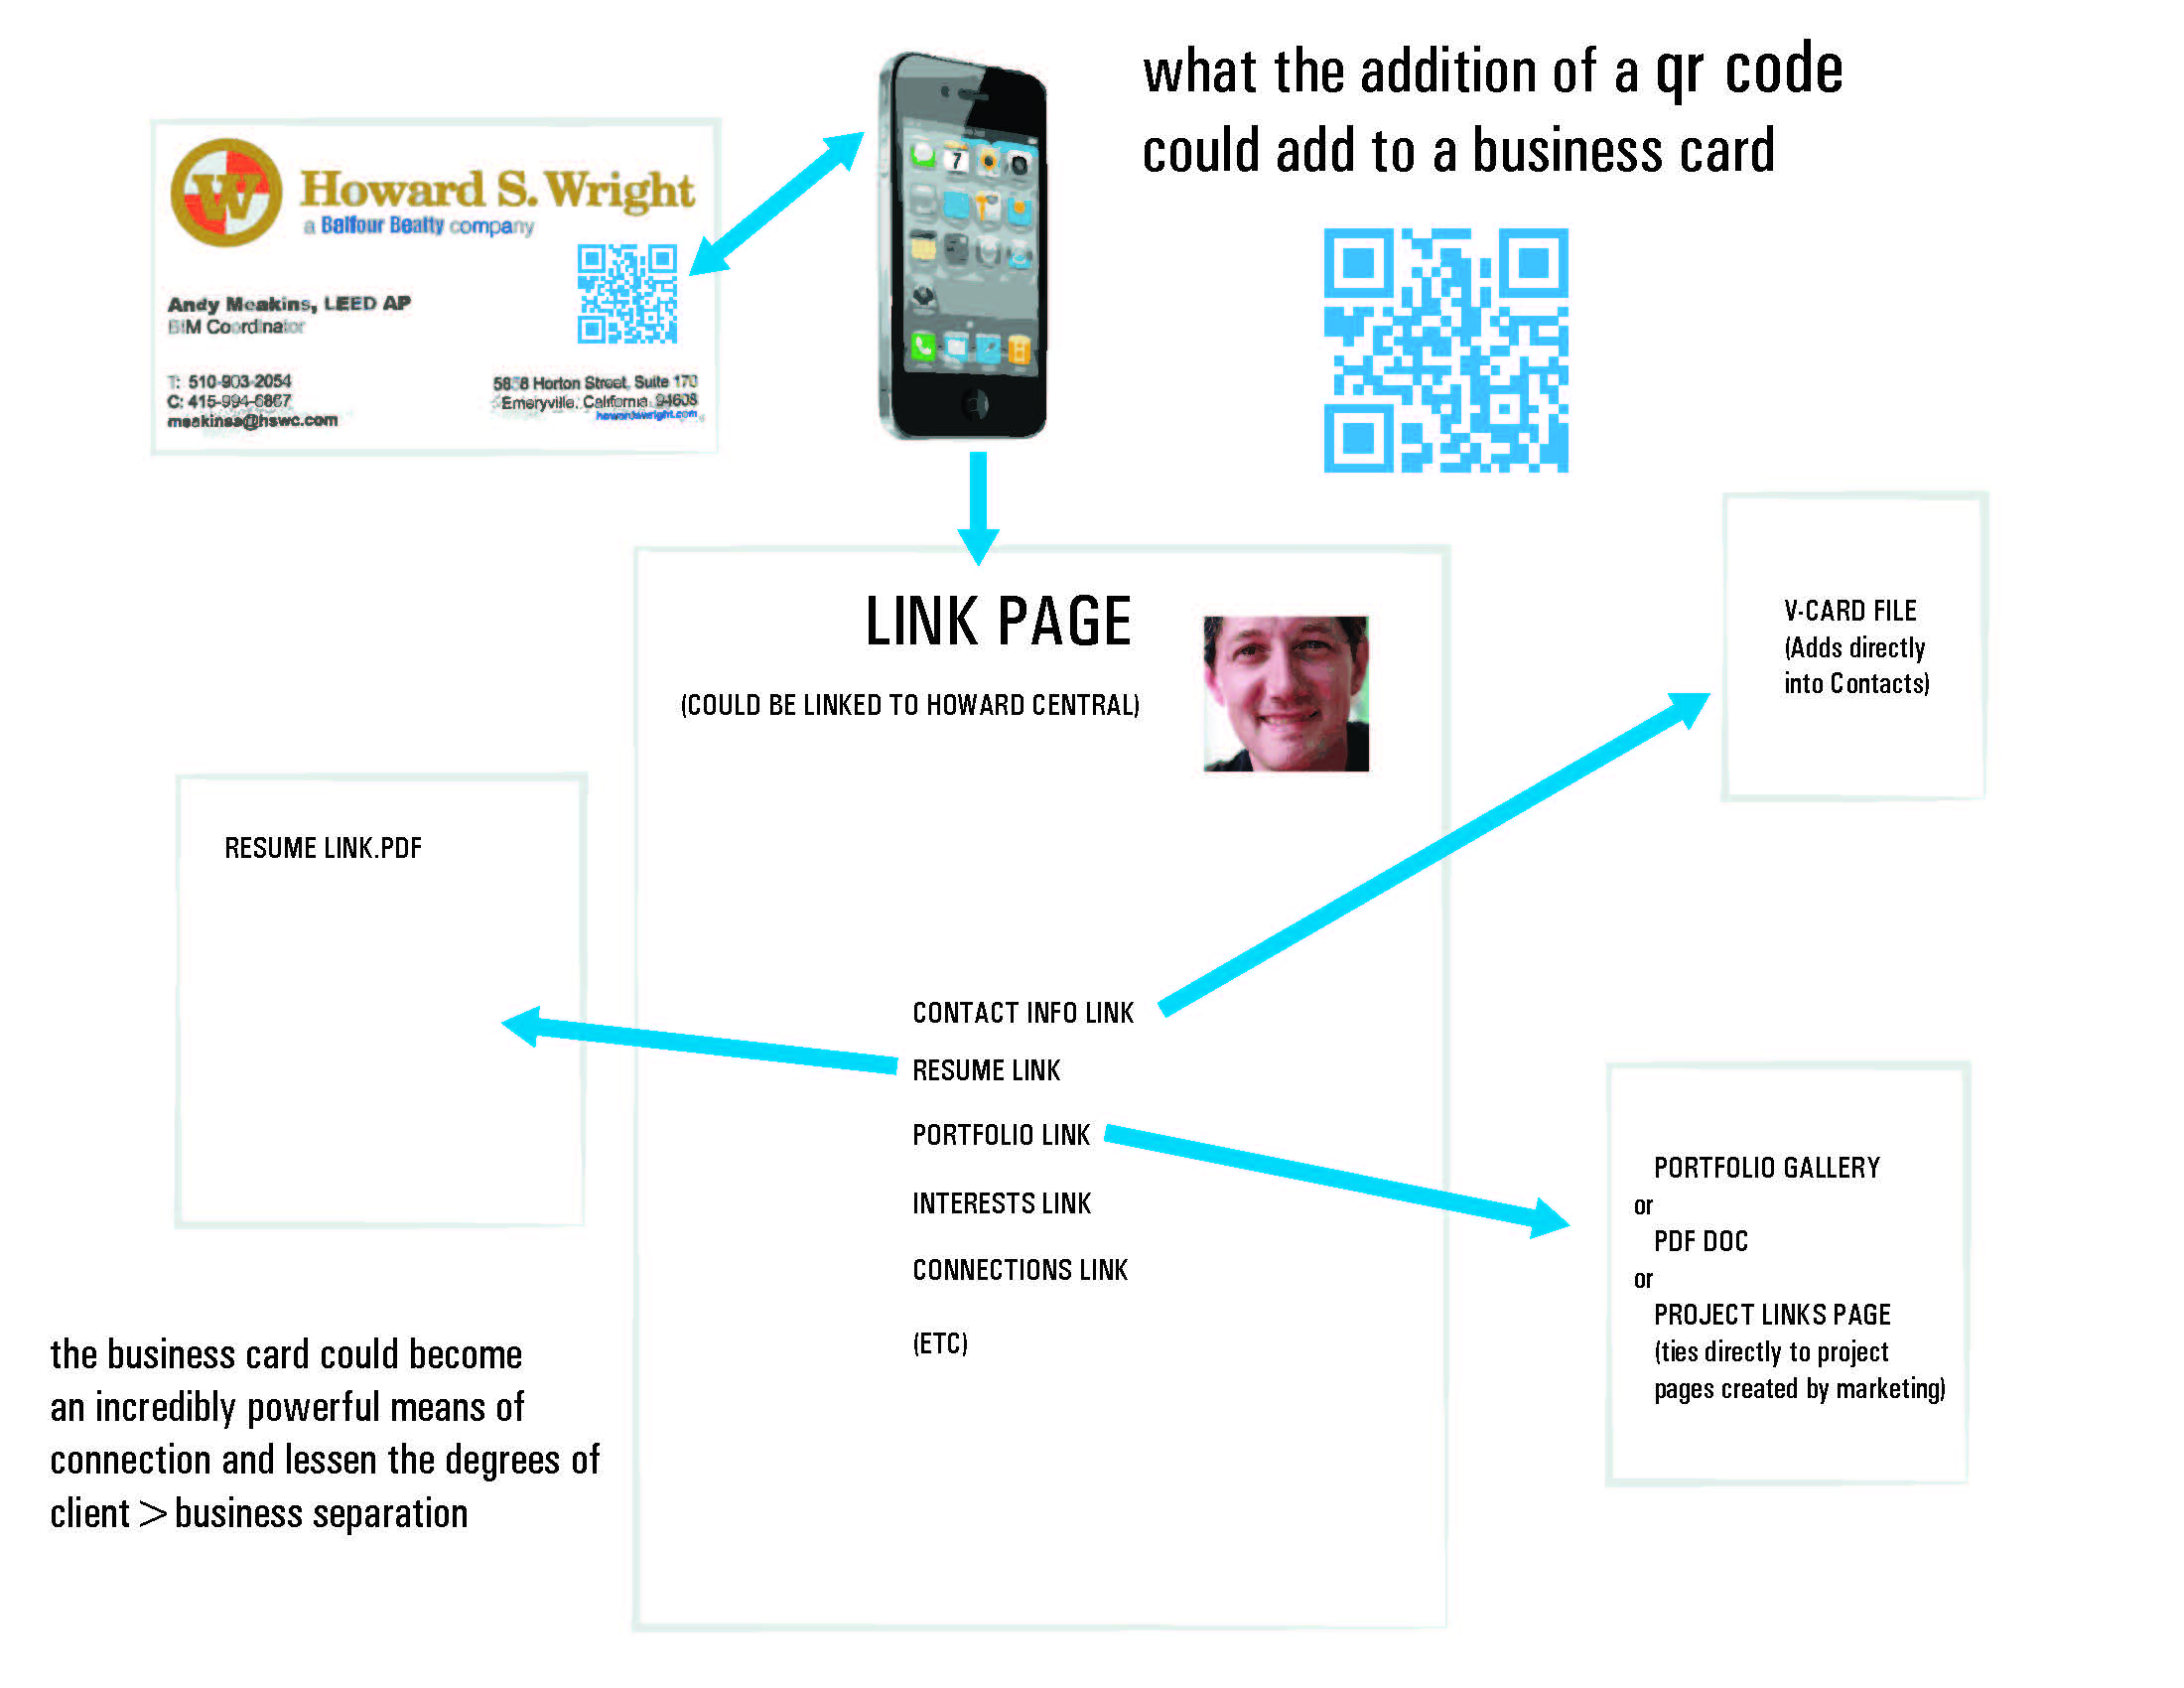 SMART BUSINESS CARDS - QR CODE LINKAGE